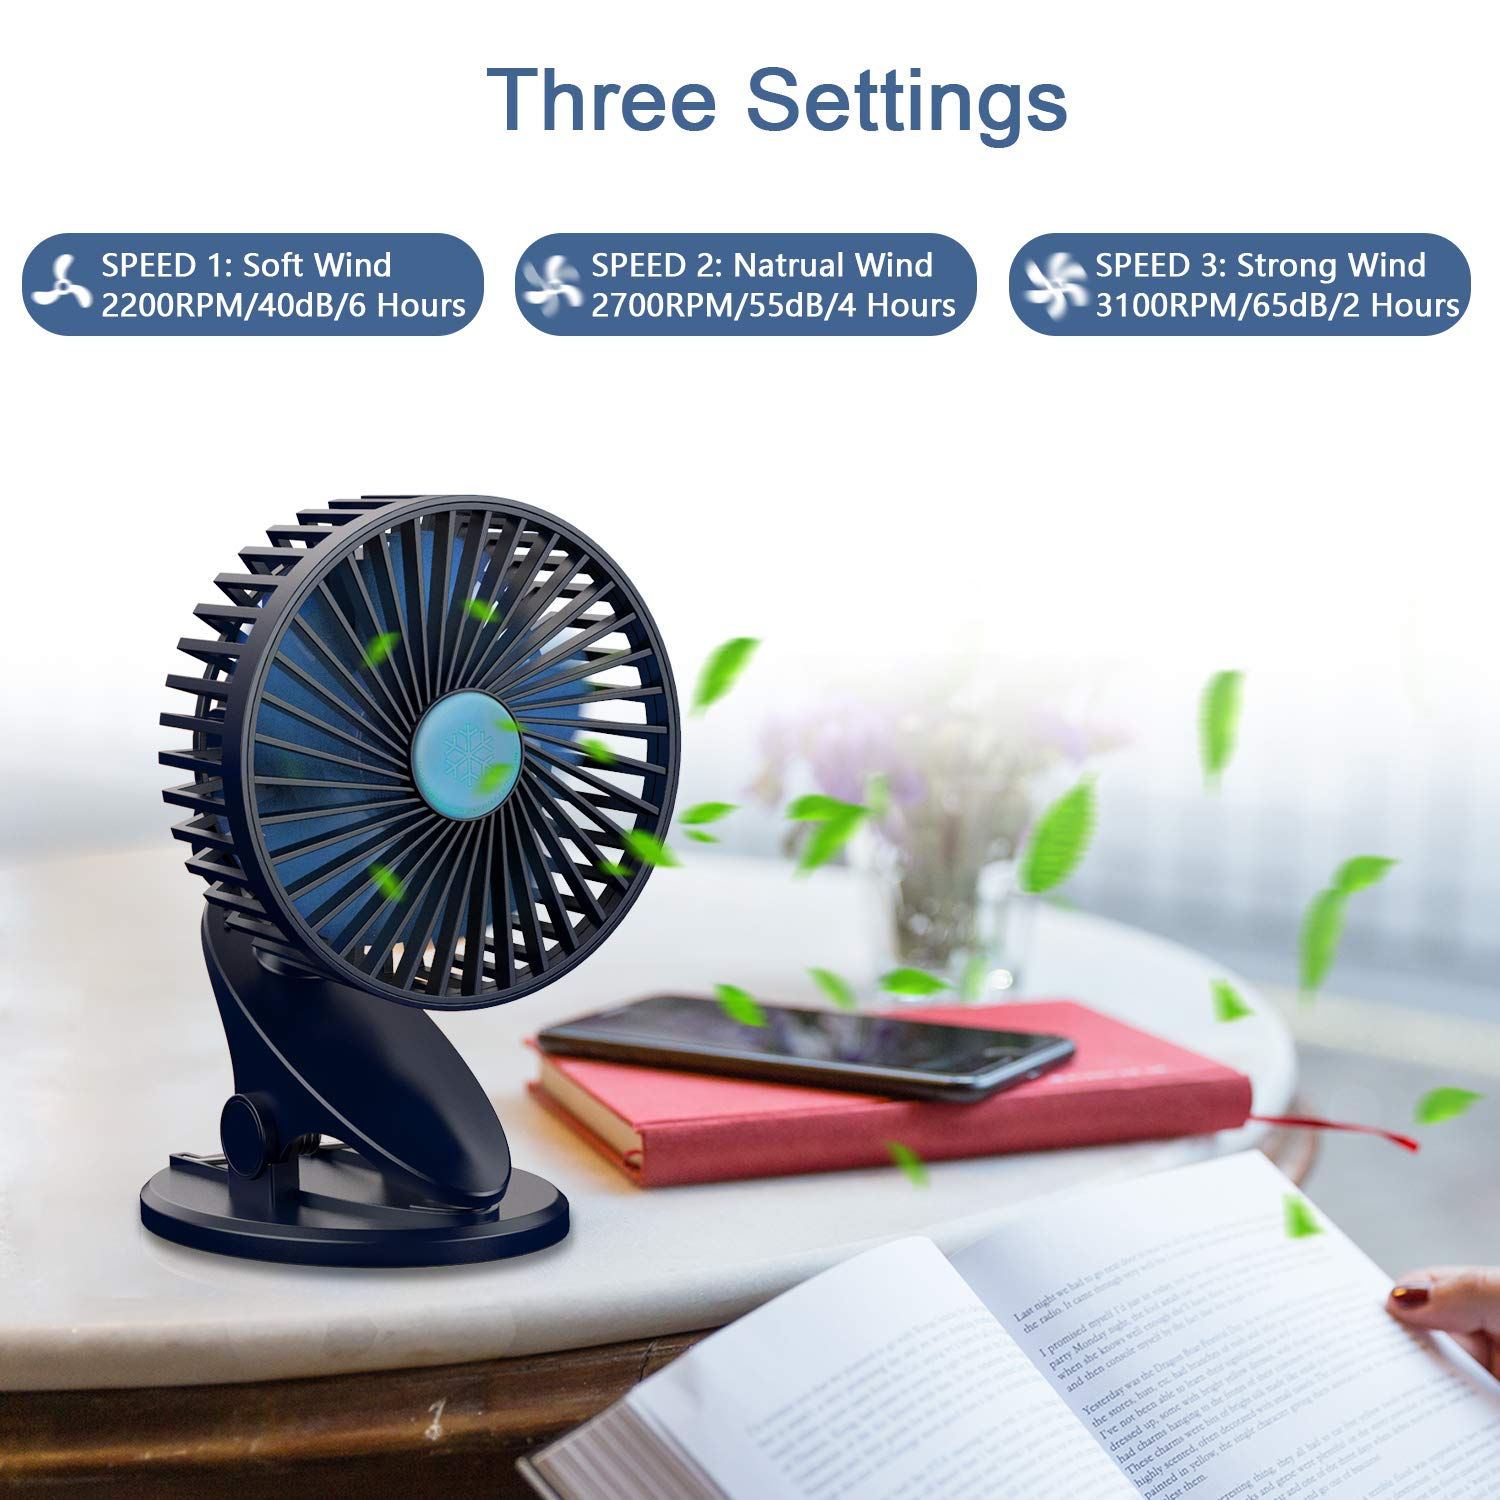 Stroller Fan, Clip On Fan, USB & Rechargeable Battery OperatedMini Fans with 3 Speeds, Personal Cooling Fan 360°Adjustable Rotating, Super Quiet, Ideal for Home, Office Desk, Travelling & Camping by NUÜR (Image #2)